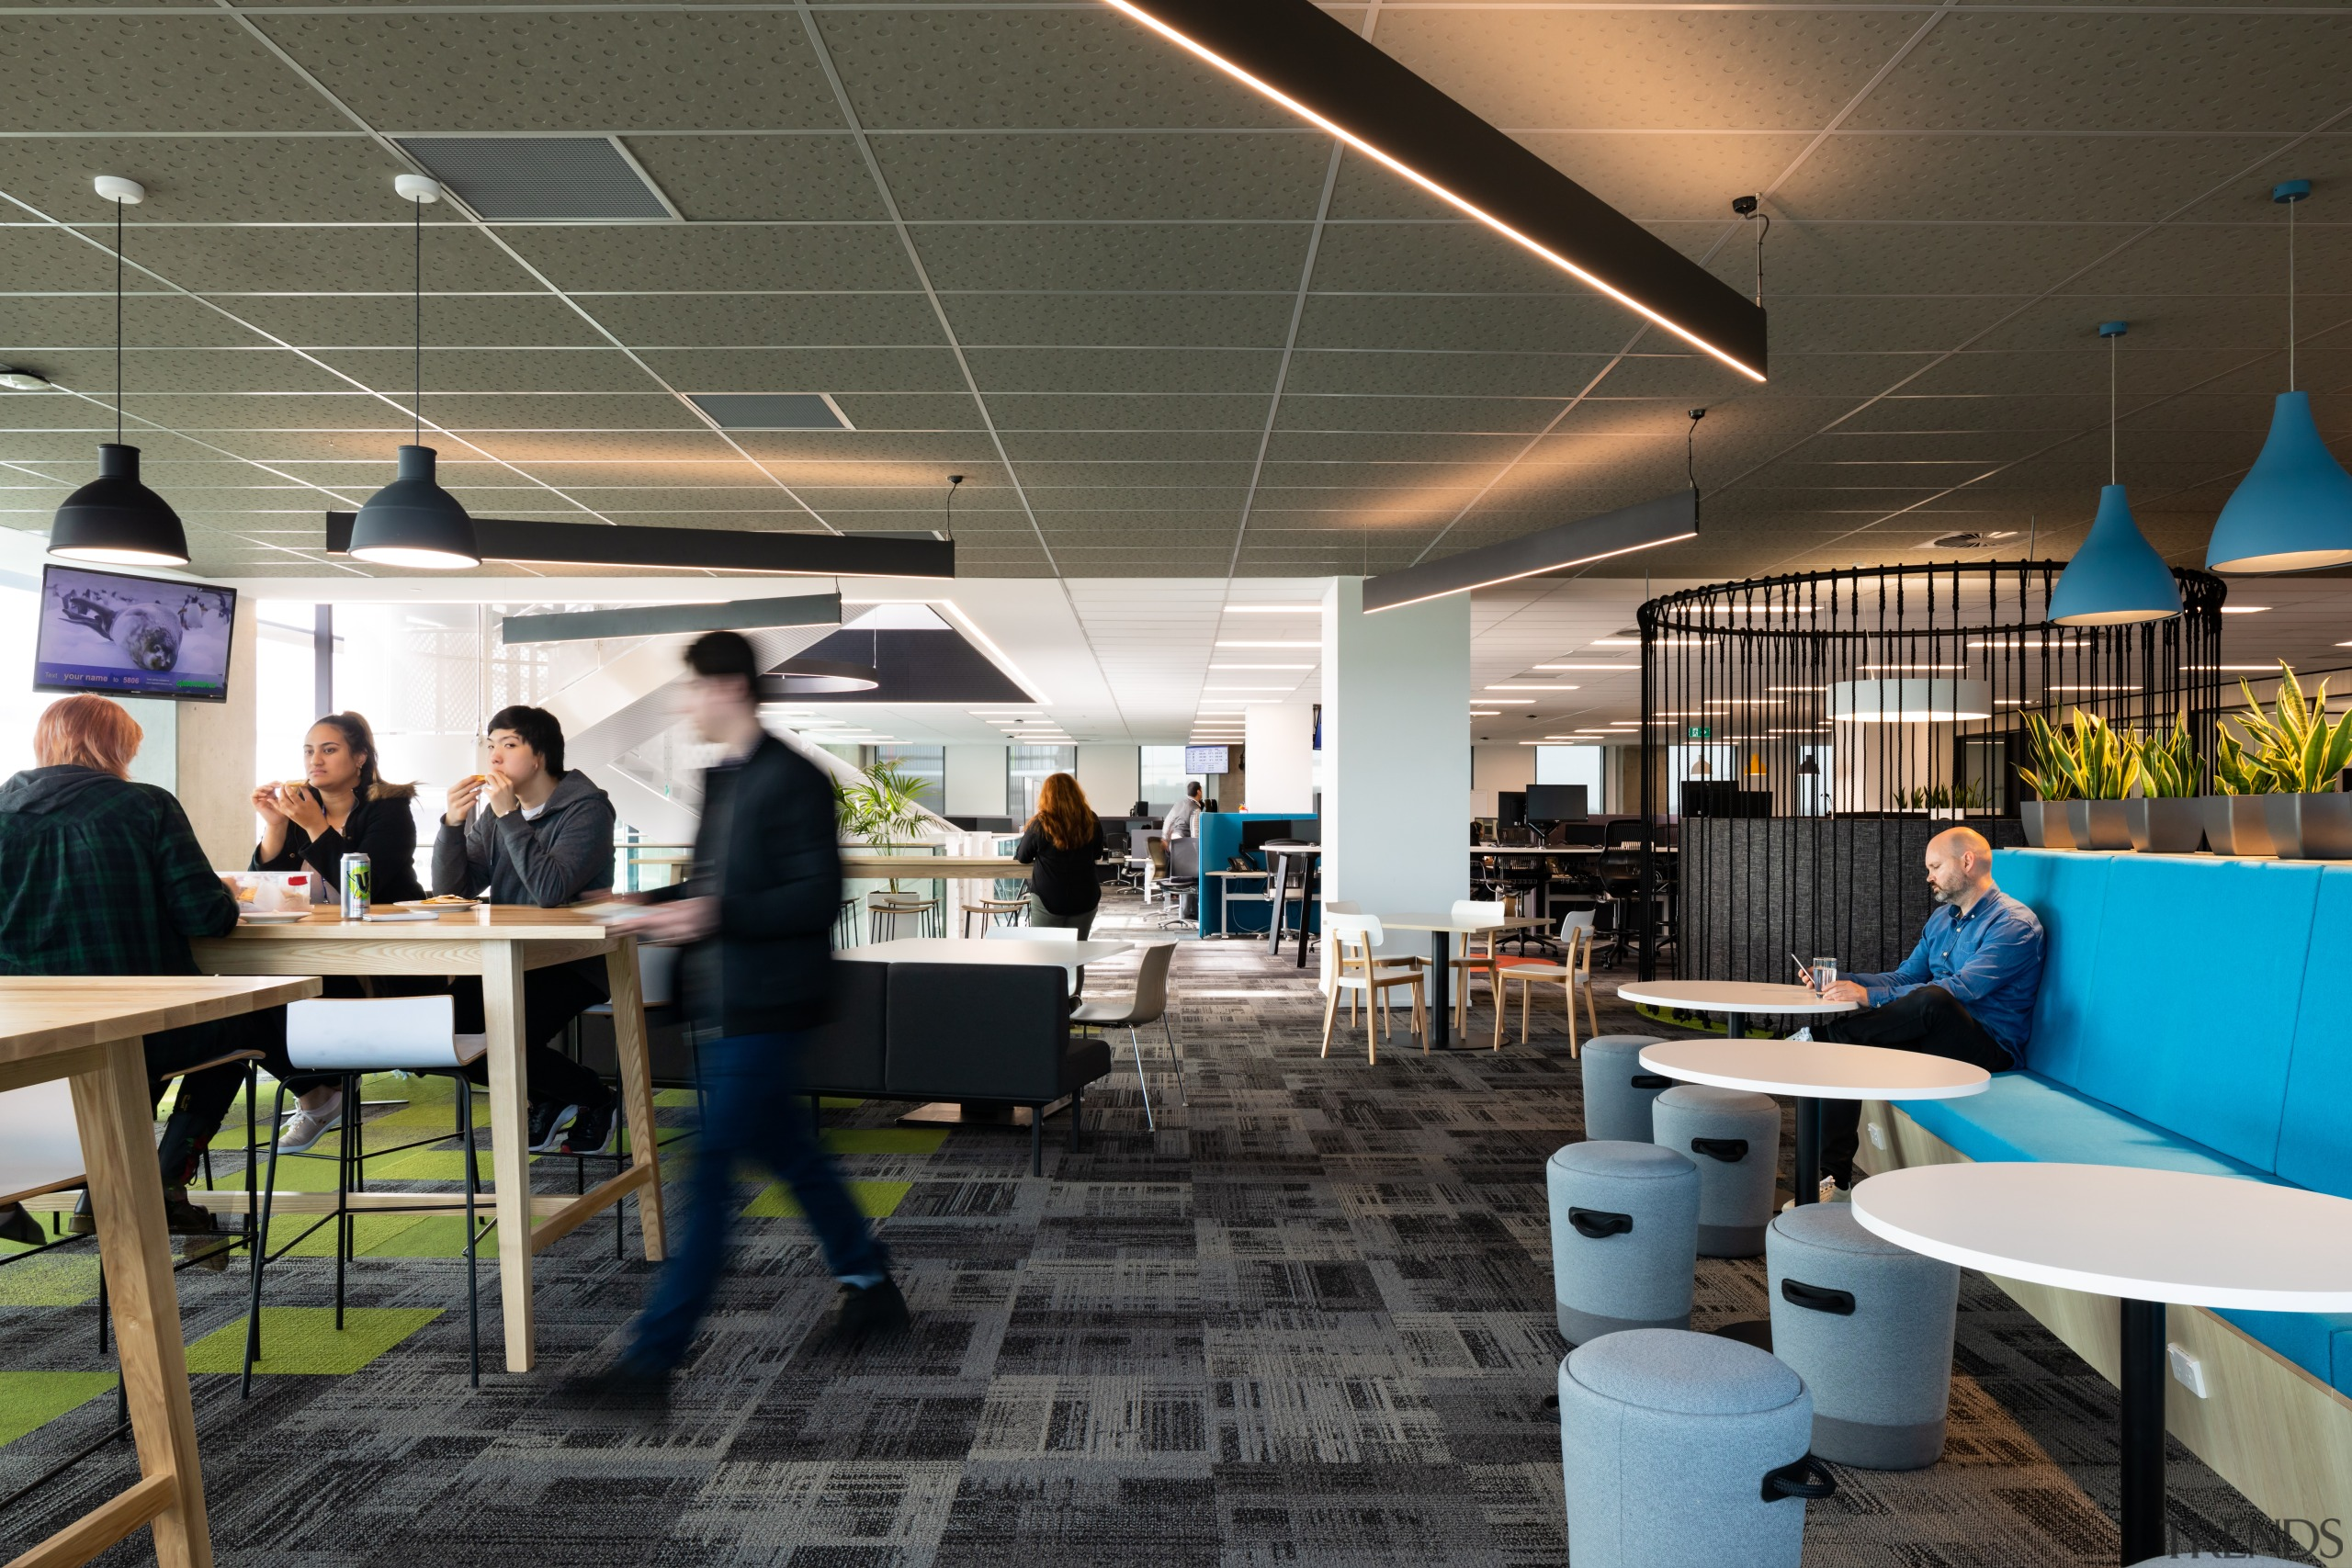 Splashes of colour reinforce brand colours on the architecture, building, design, flooring, furniture, interior design, office, IAG fit-out,  No 1 Sylvia Park, wooden bench tables